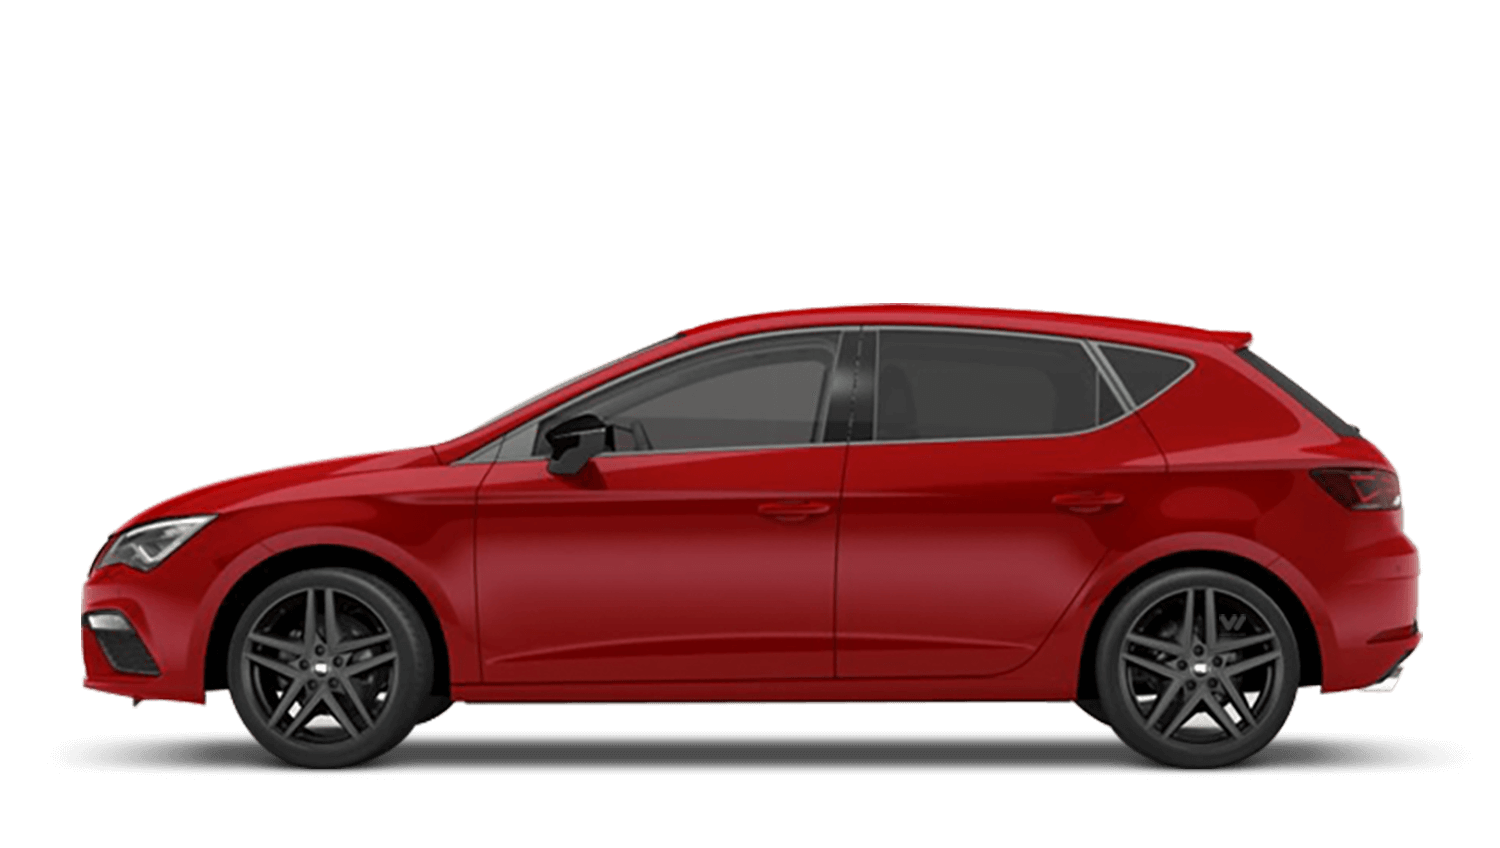 Desire Red (Metallic) SEAT Leon 5 Door